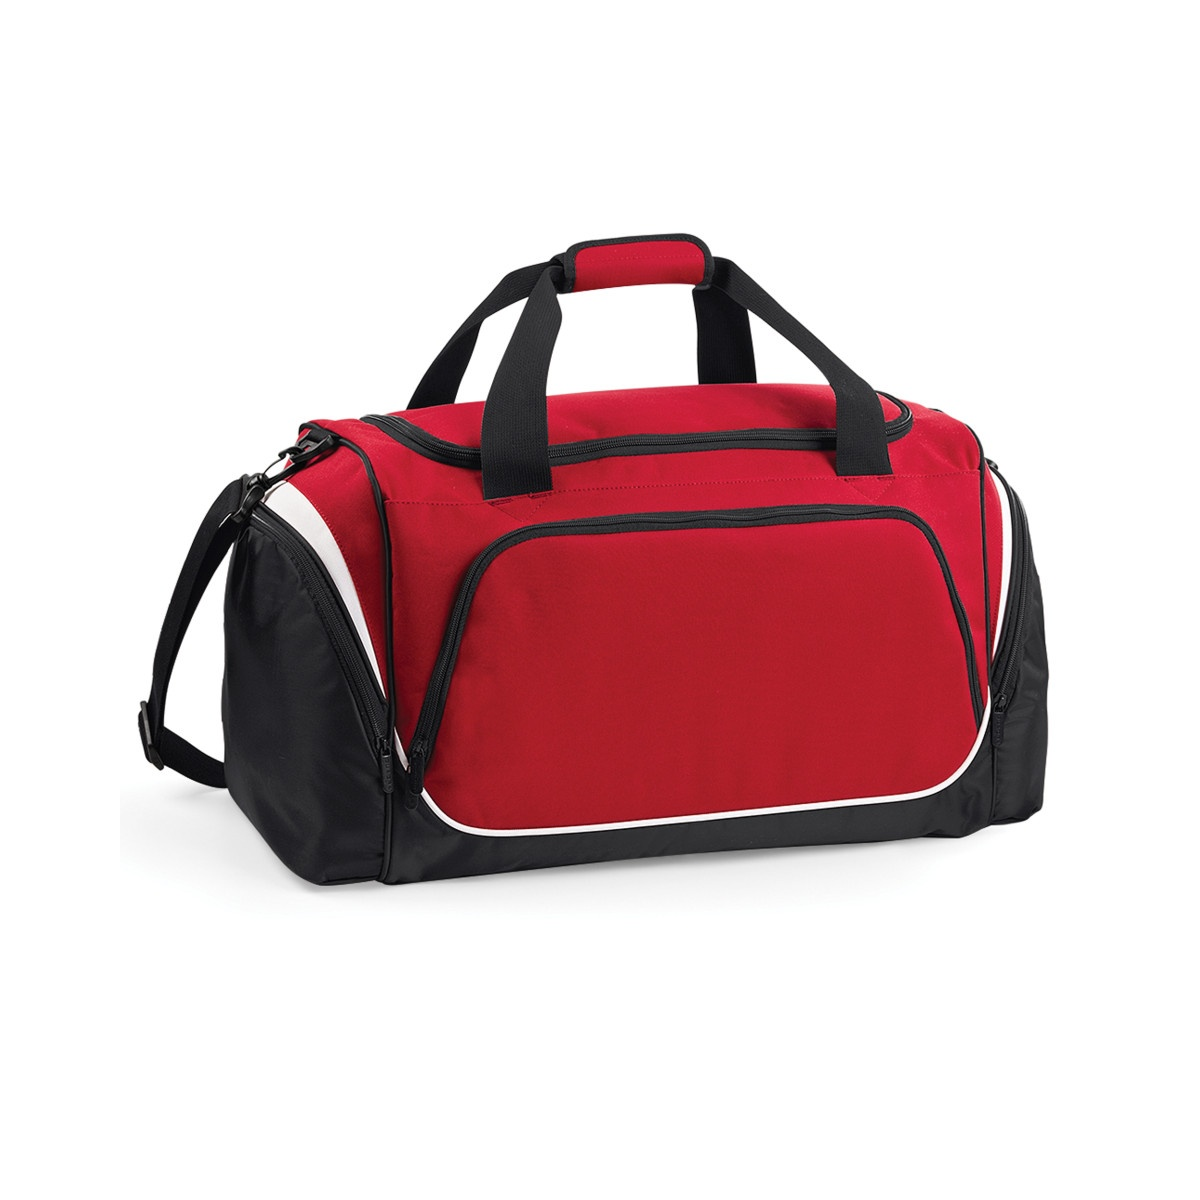 Quadra Pro Team Holdall / Duffle Bag (55 Litres) (Pack of 2) (One Size) (Classic Red/Black/White)